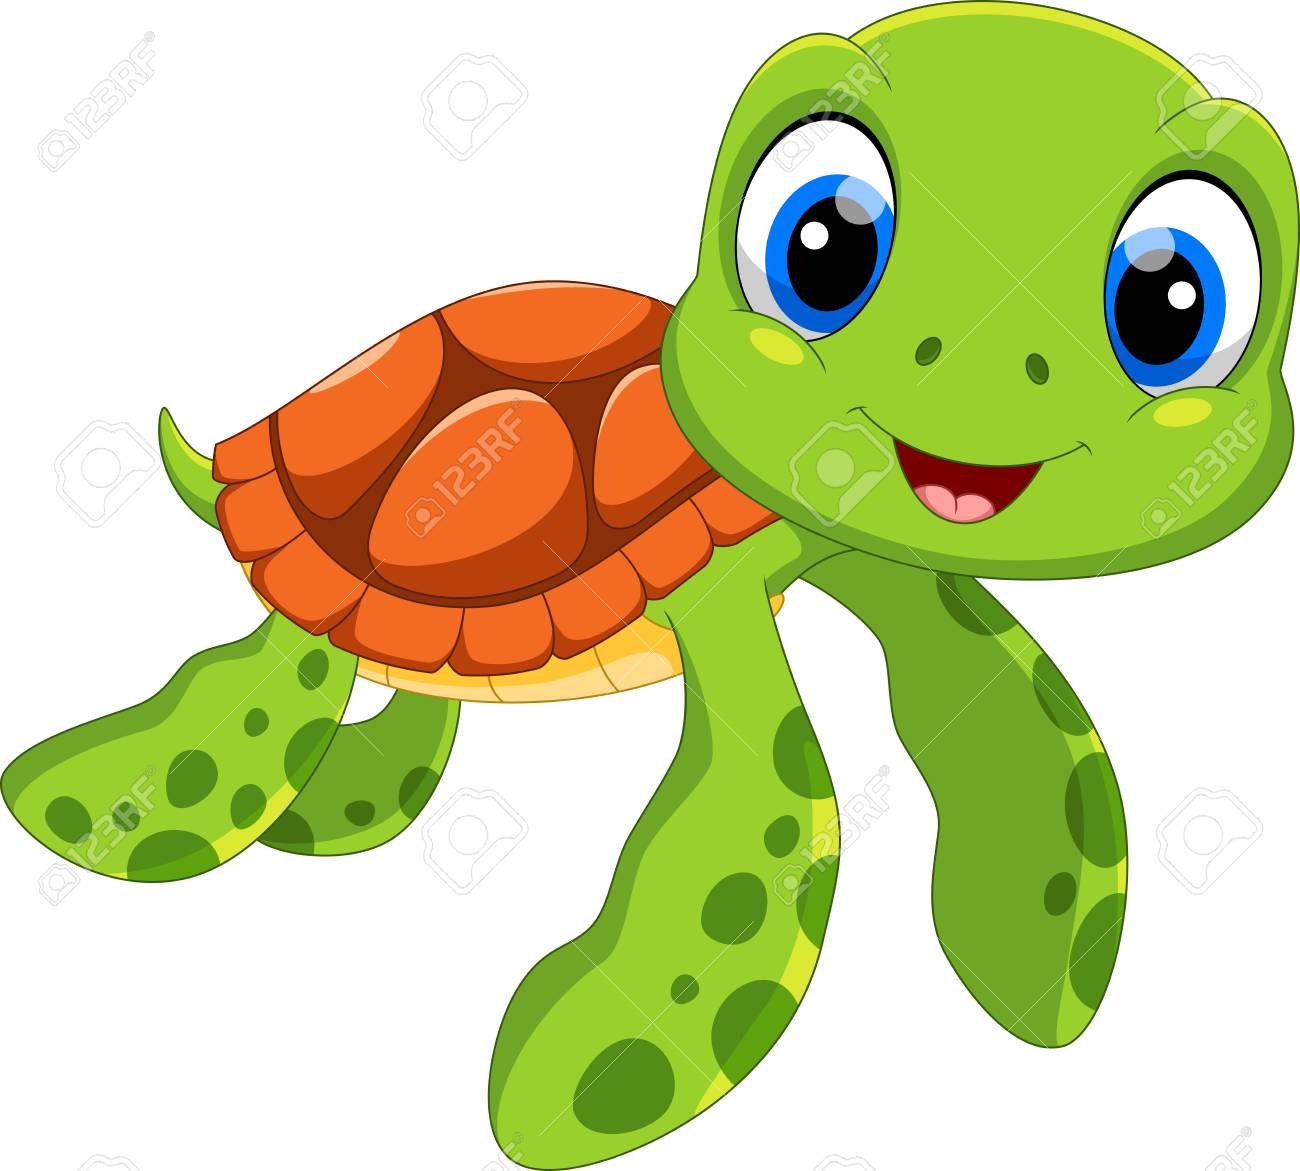 Cute Sea Turtle Cartoon Isolated On White Background Royalty Free ...